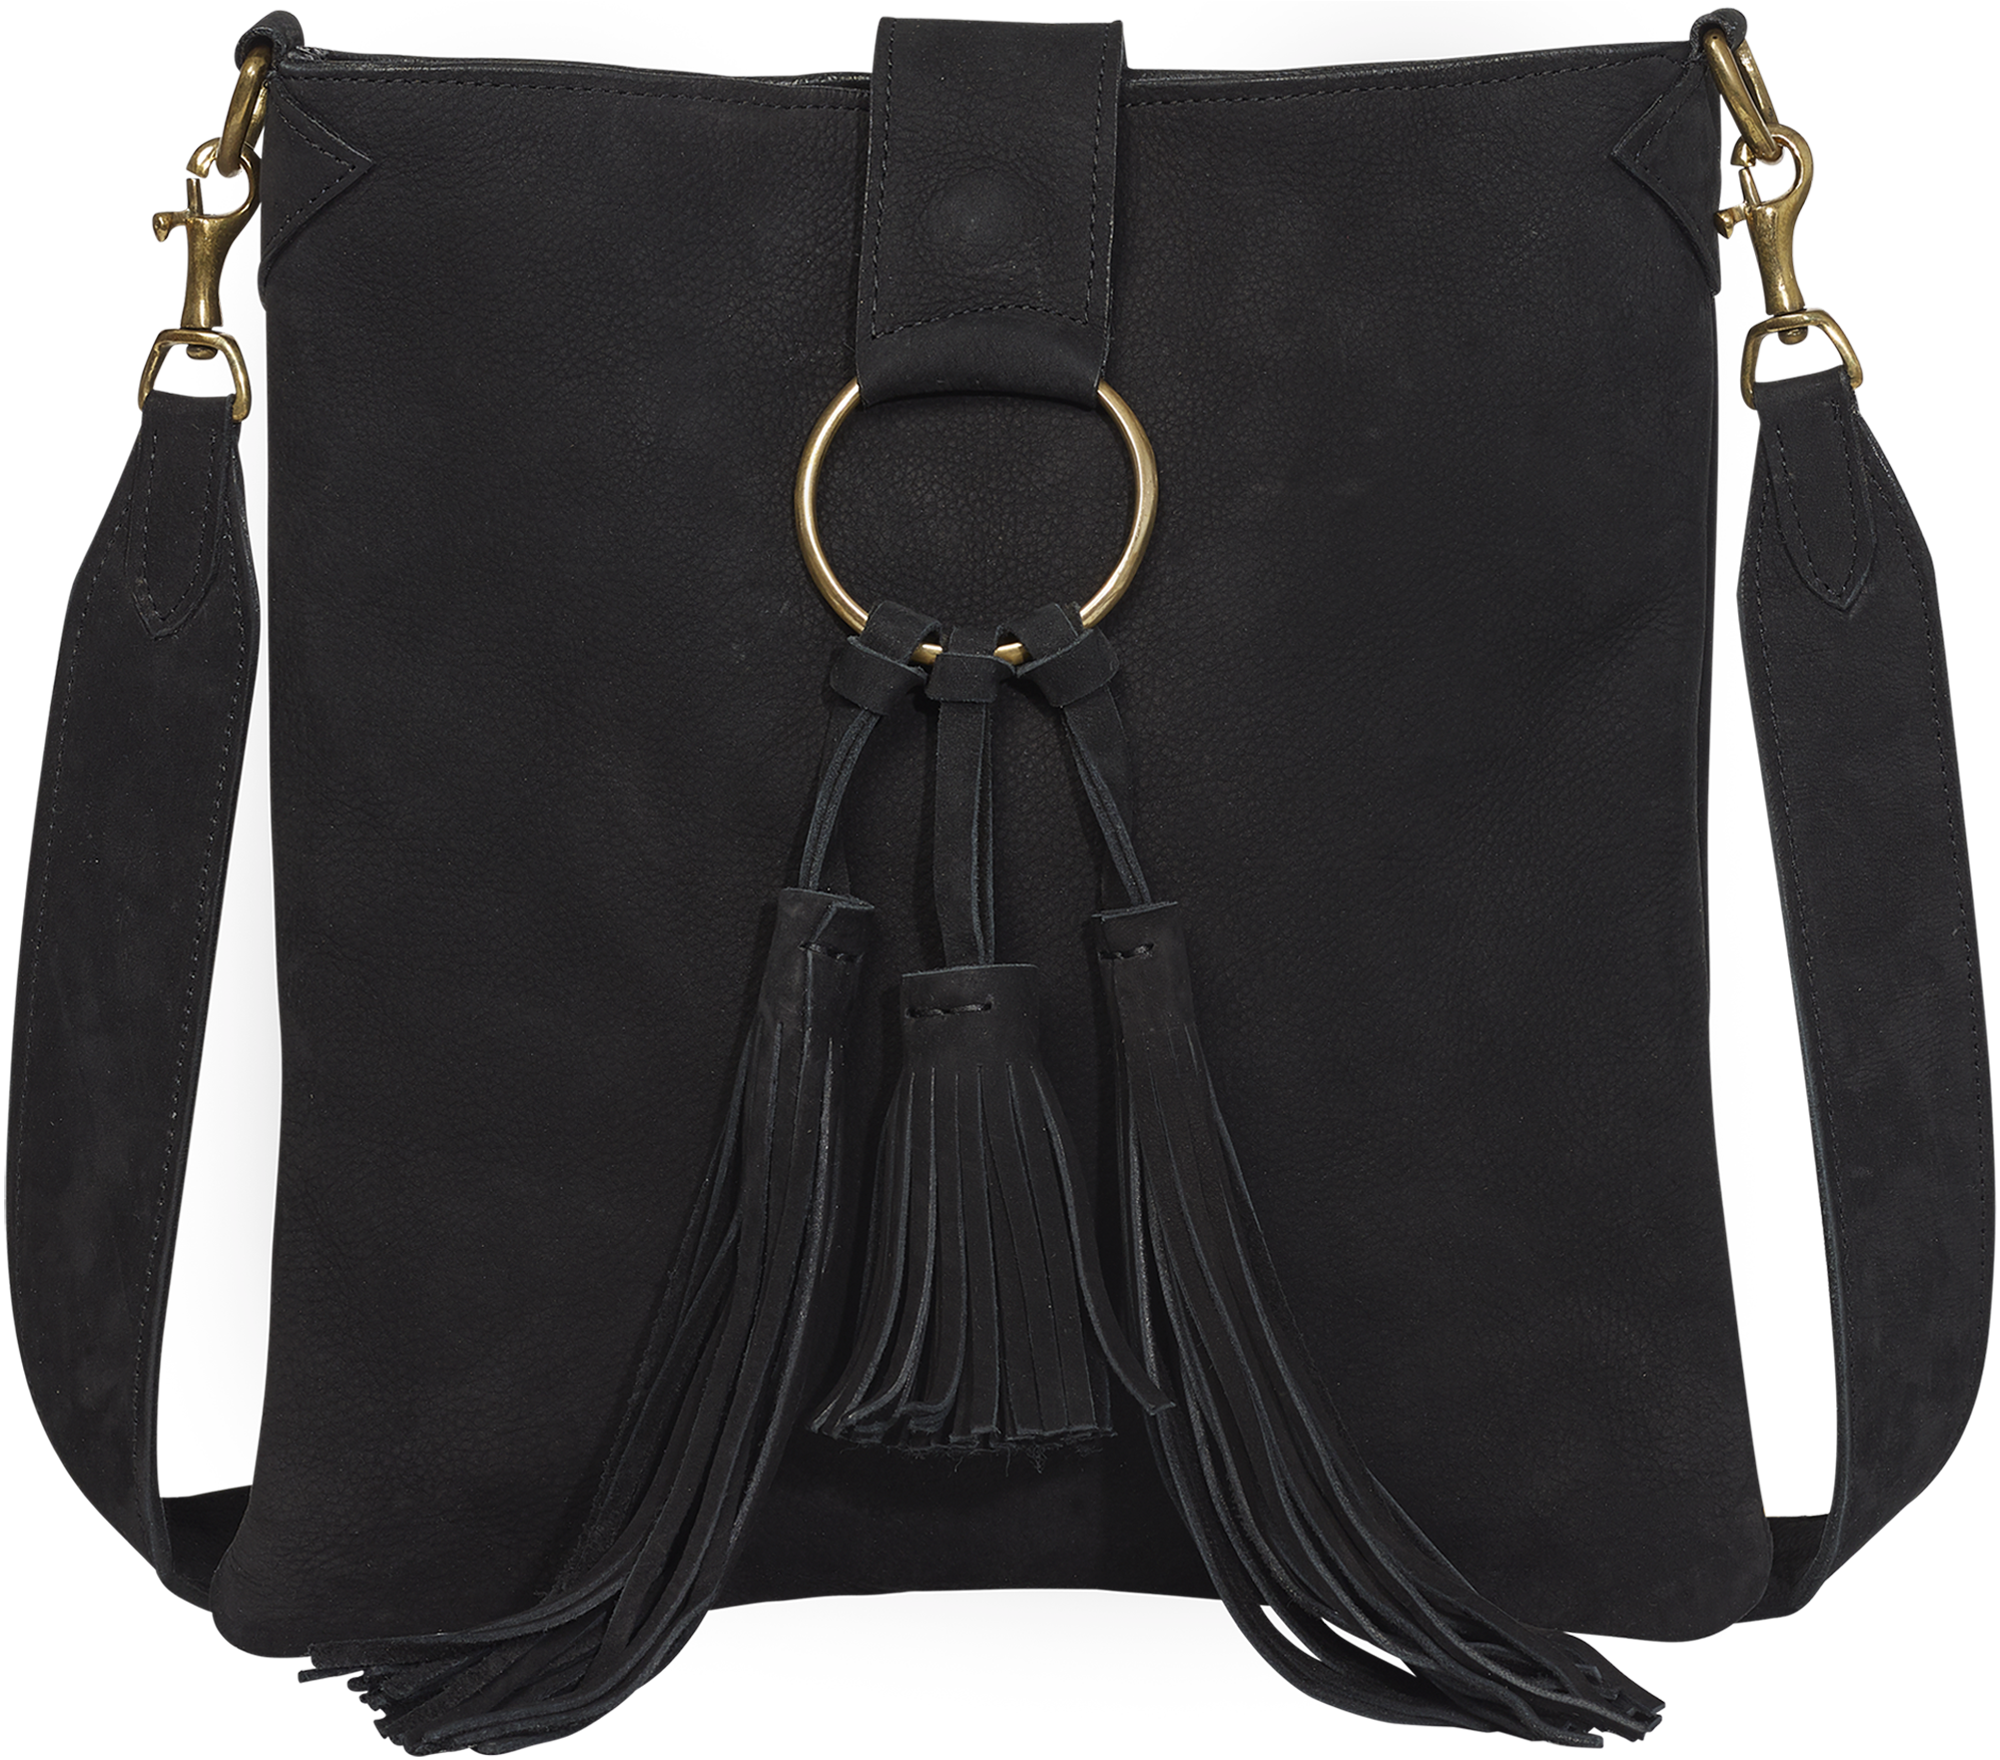 Handbag Black Suede Crossbody Bag